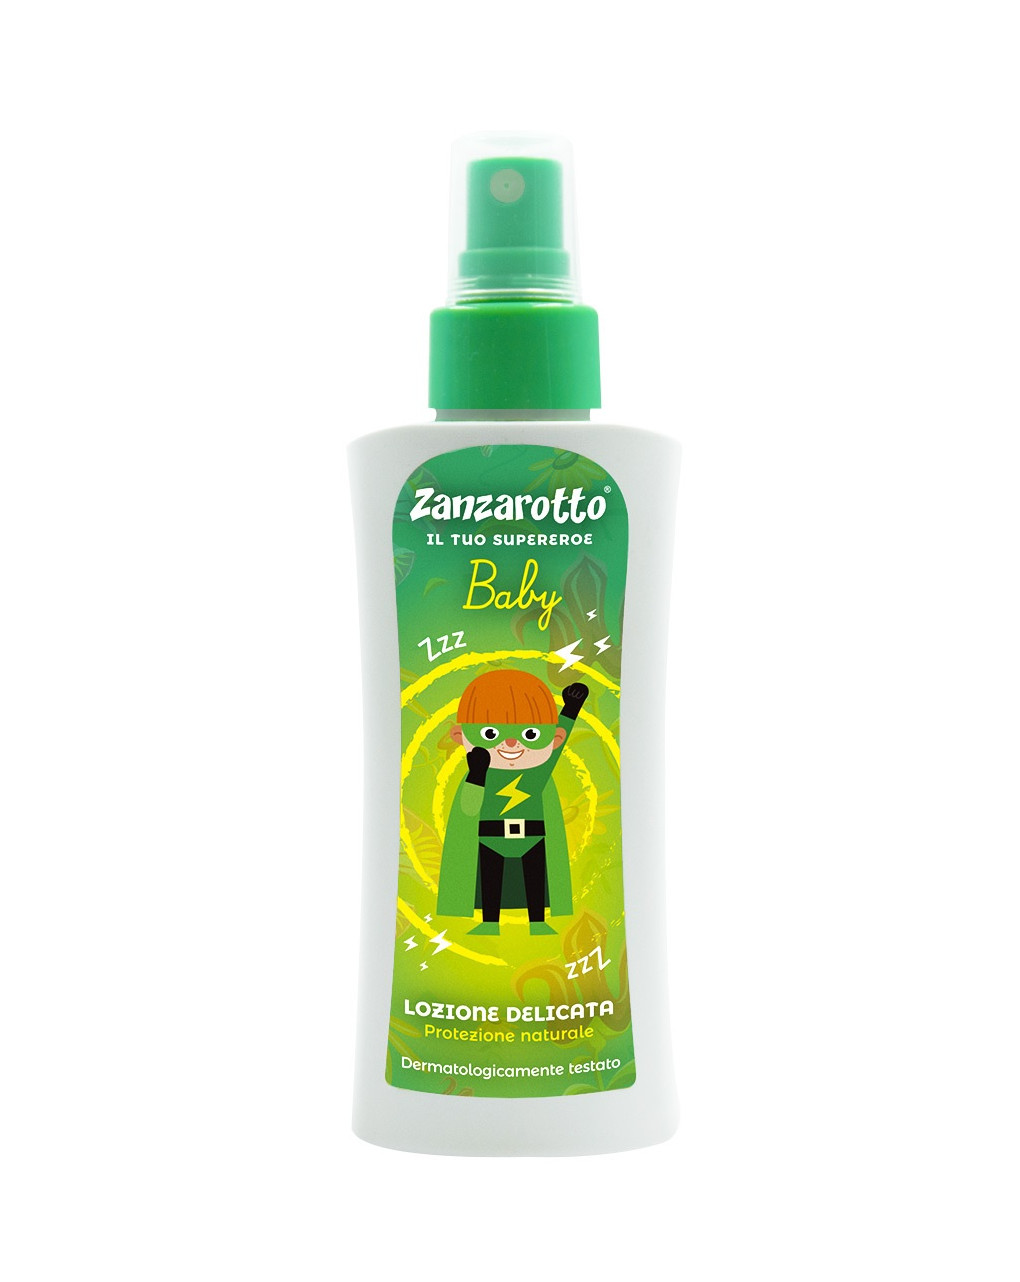 Zanzarotto spray lozione delicata 100ml - Zanzarotto